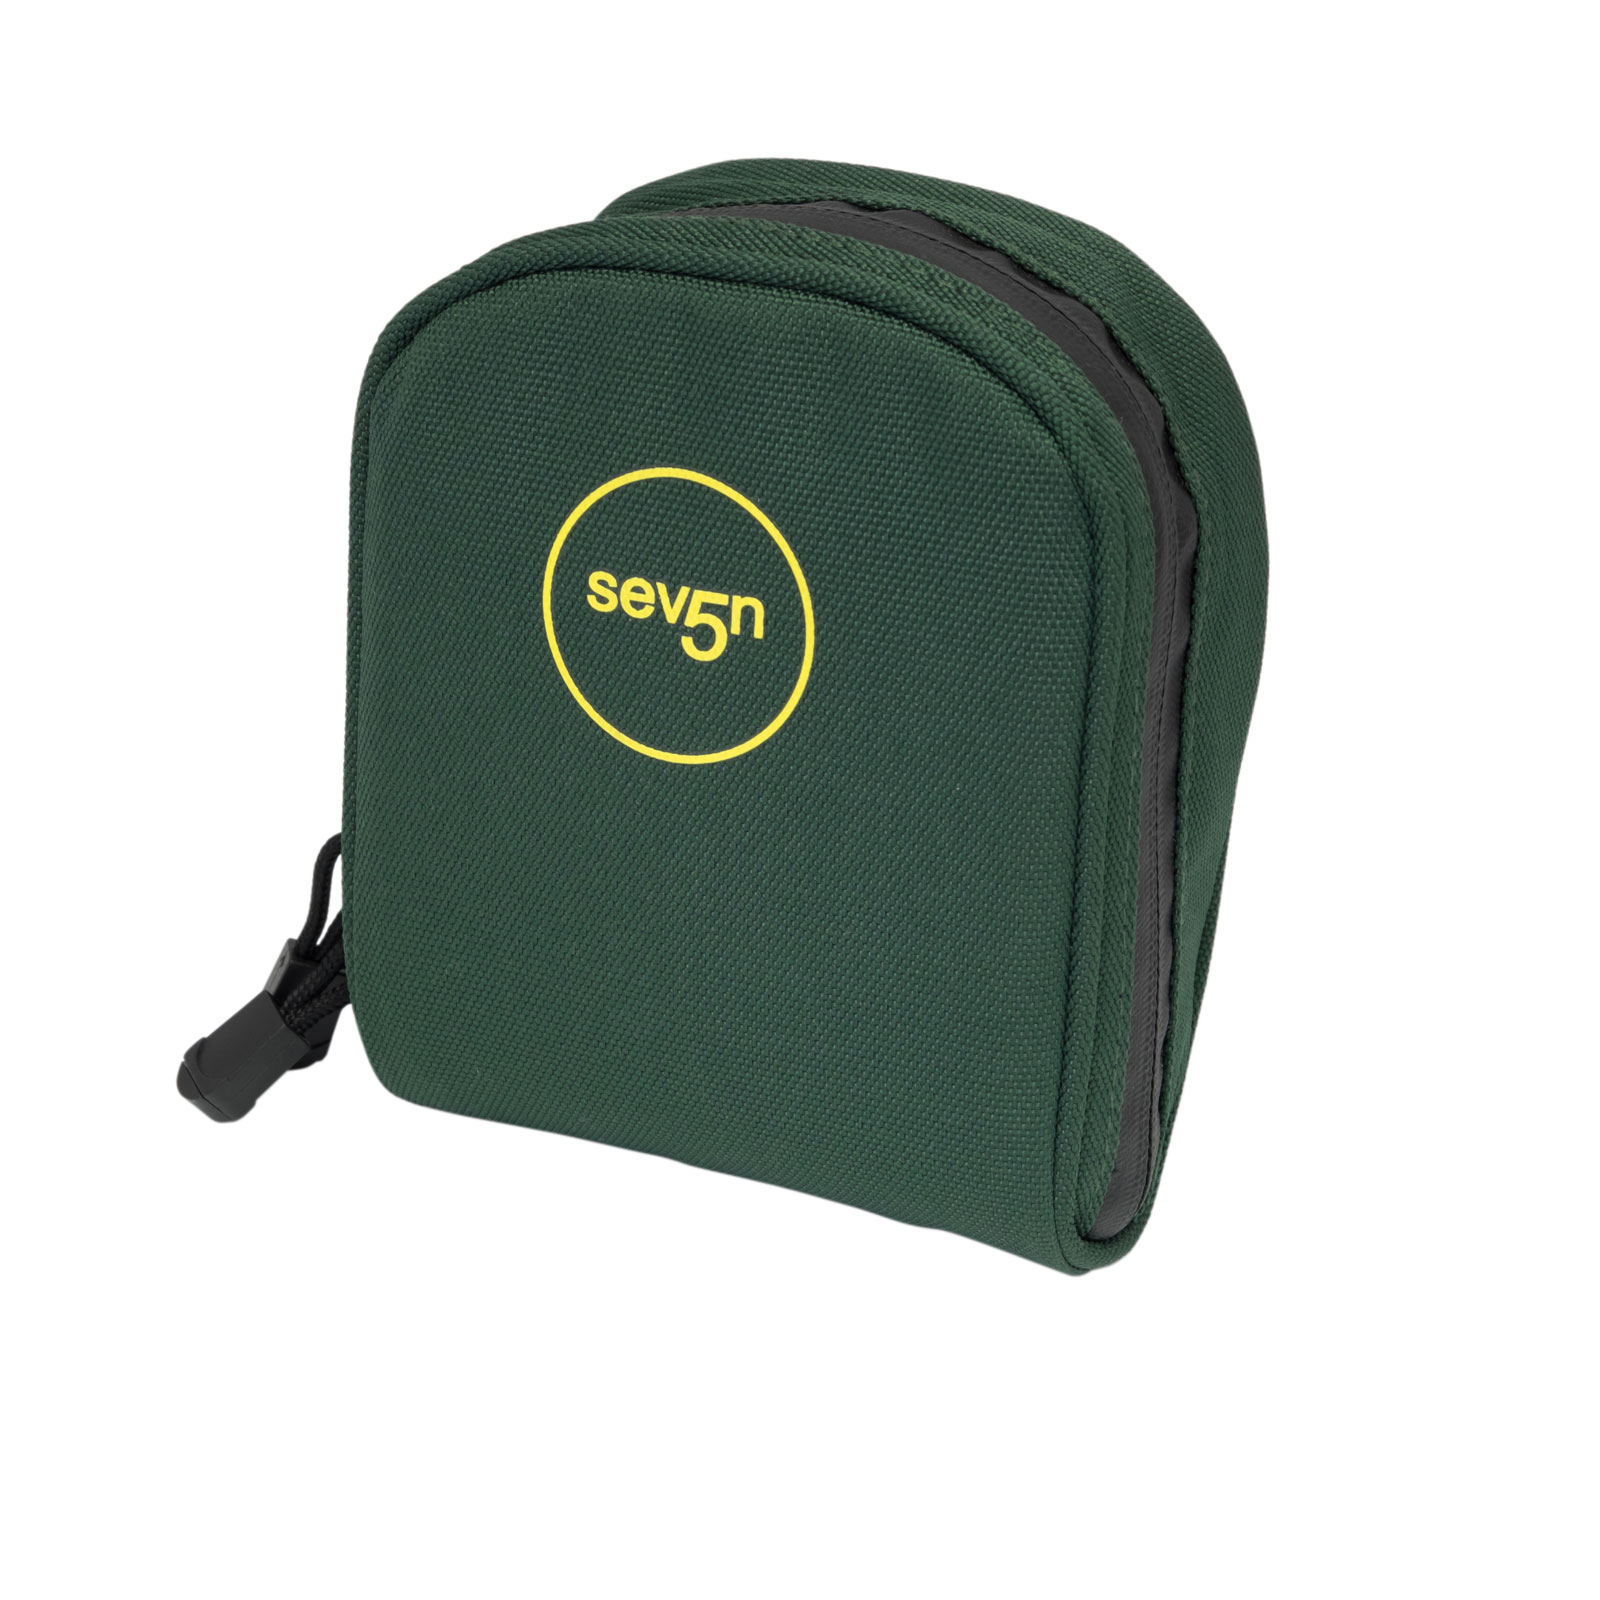 S5-Pouch-Green